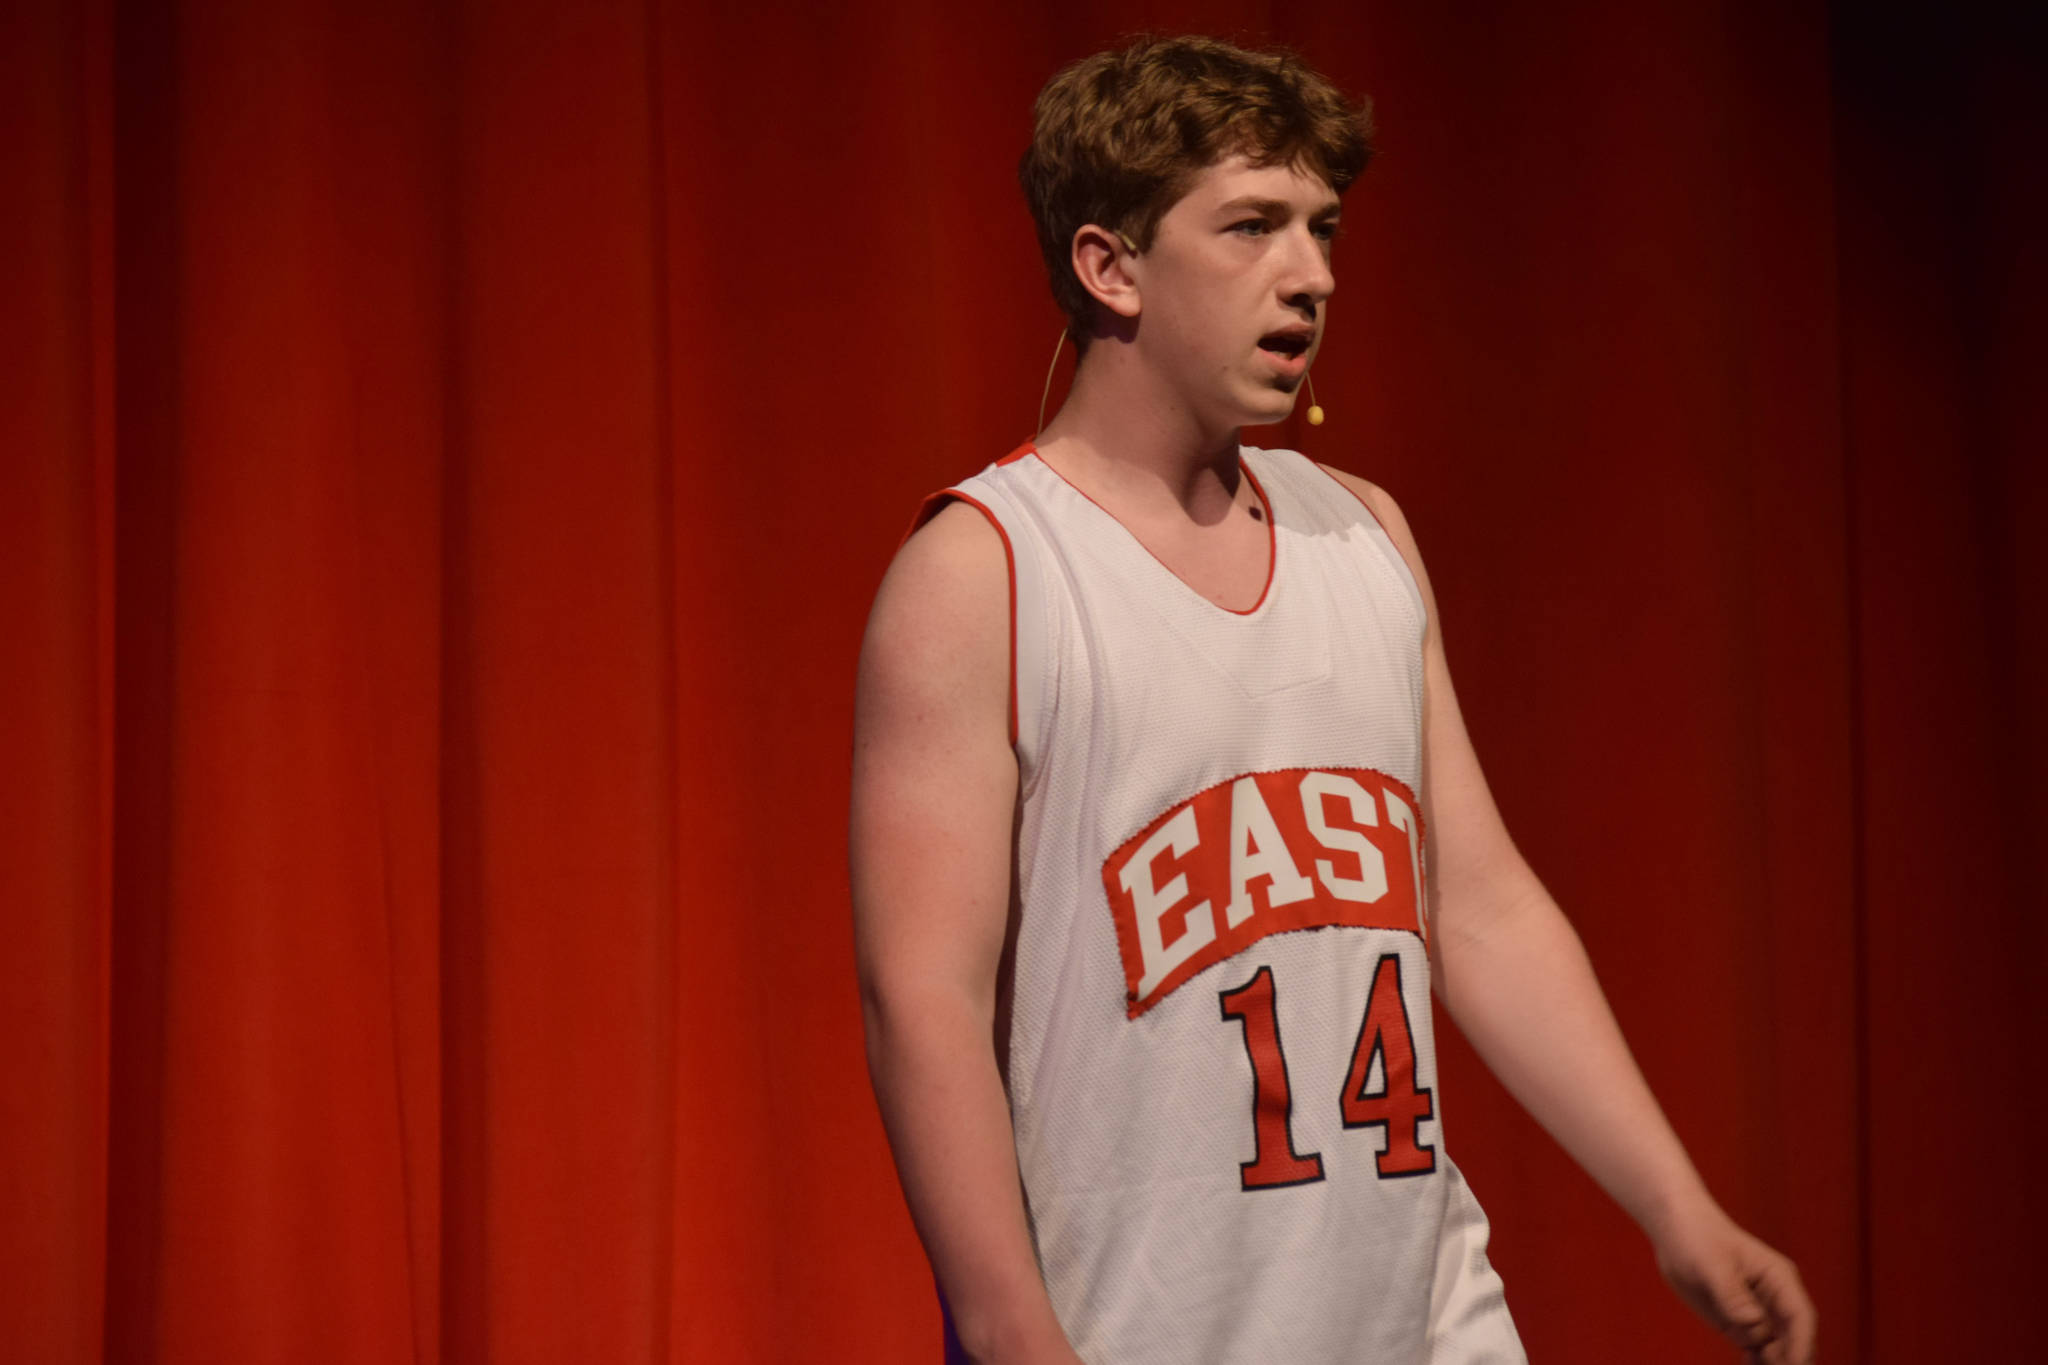 """Braeden Porter sings onstage as his character Troy Bolton in the Nikiski Middle/High School's spring production of """"High School Musical"""" in Nikiski, Alaska, on Wednesday May 5, 2021. (Camille Botello / Peninsula Clarion)"""